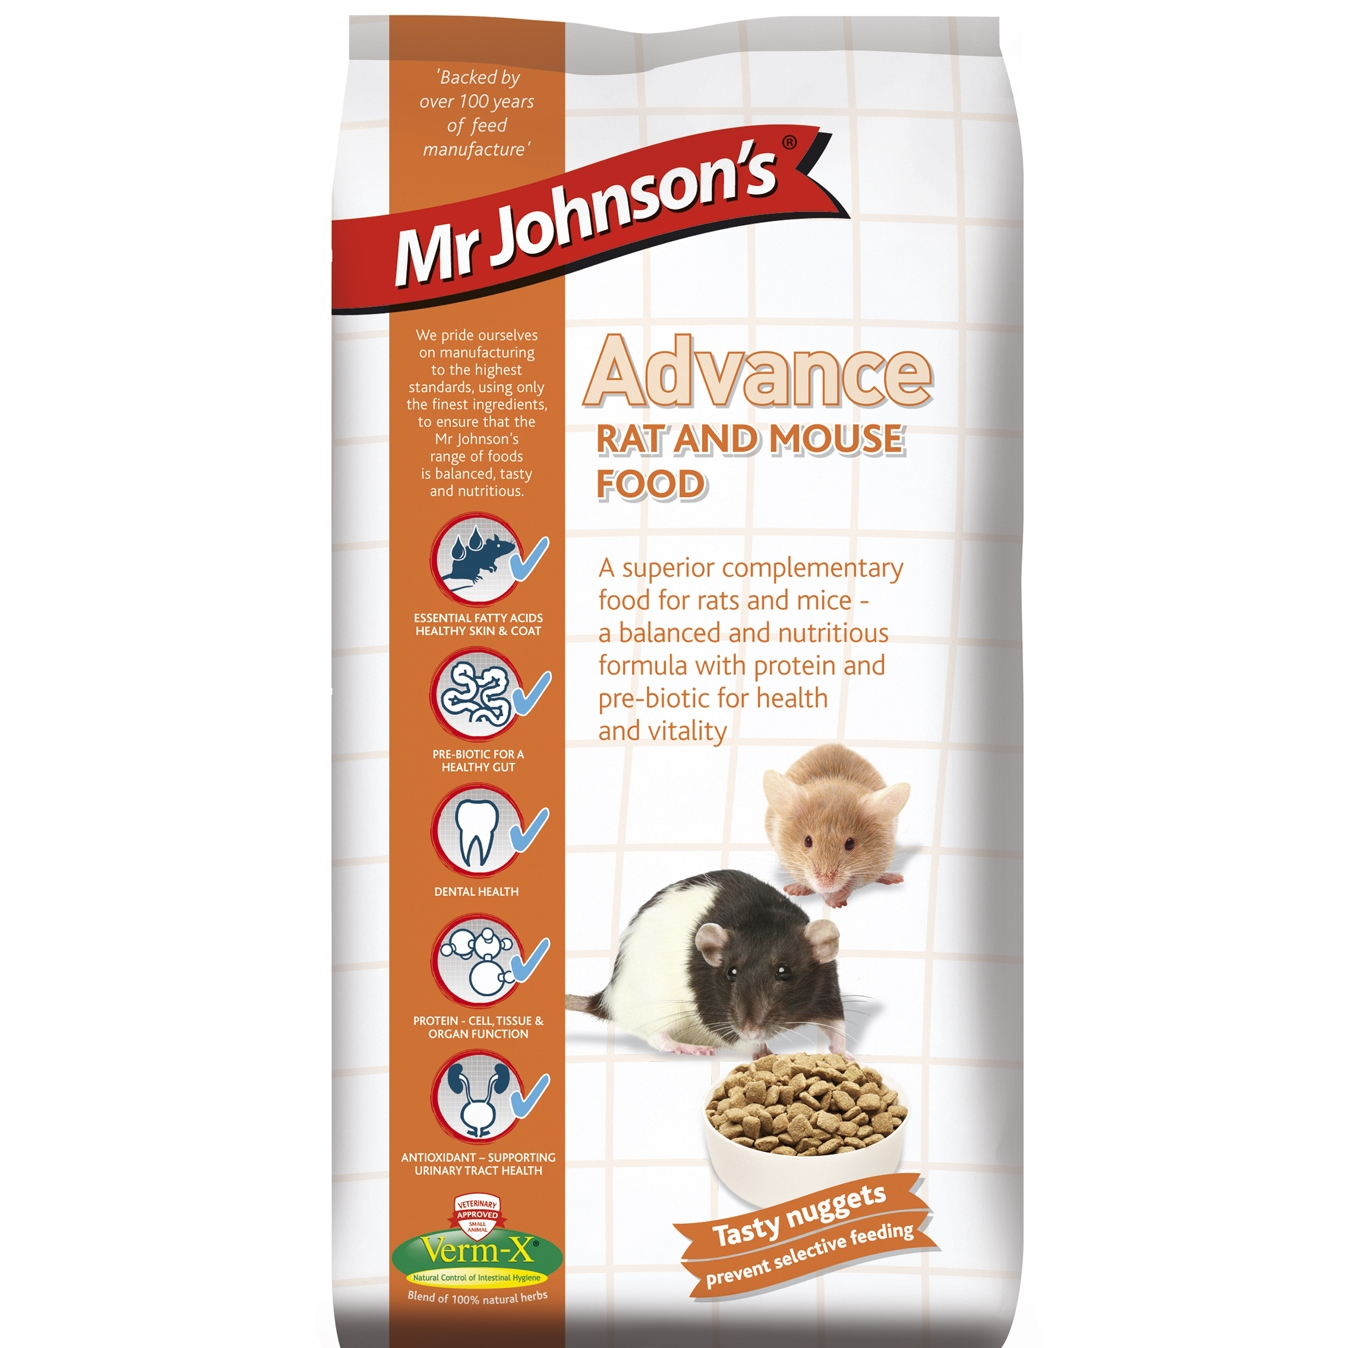 Mr Johnsons Advance Rat and Mouse Food